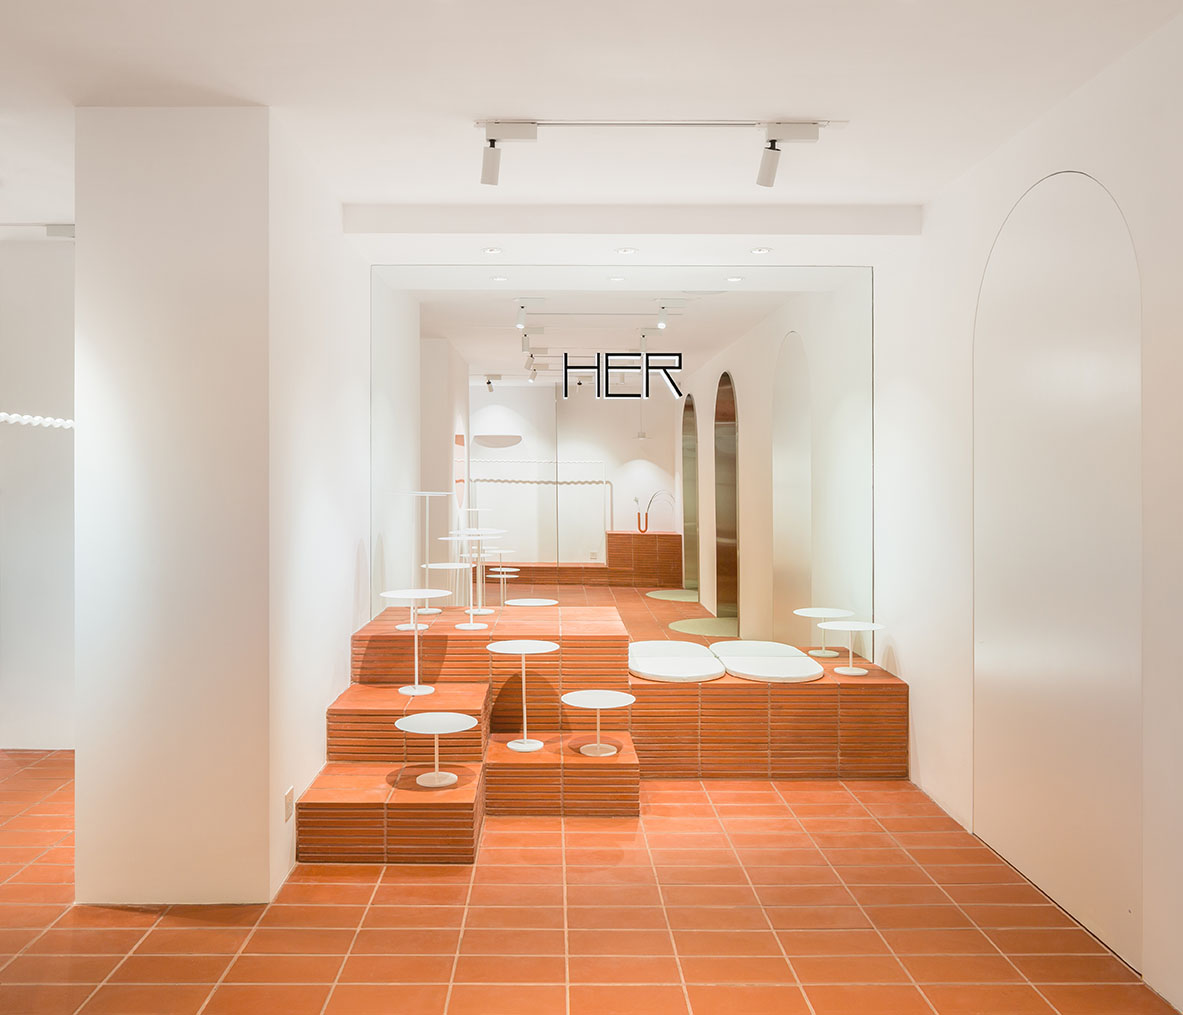 Clap-Studio-interior-design-retail-HER-Hilary-Tsui-hong-kong-award